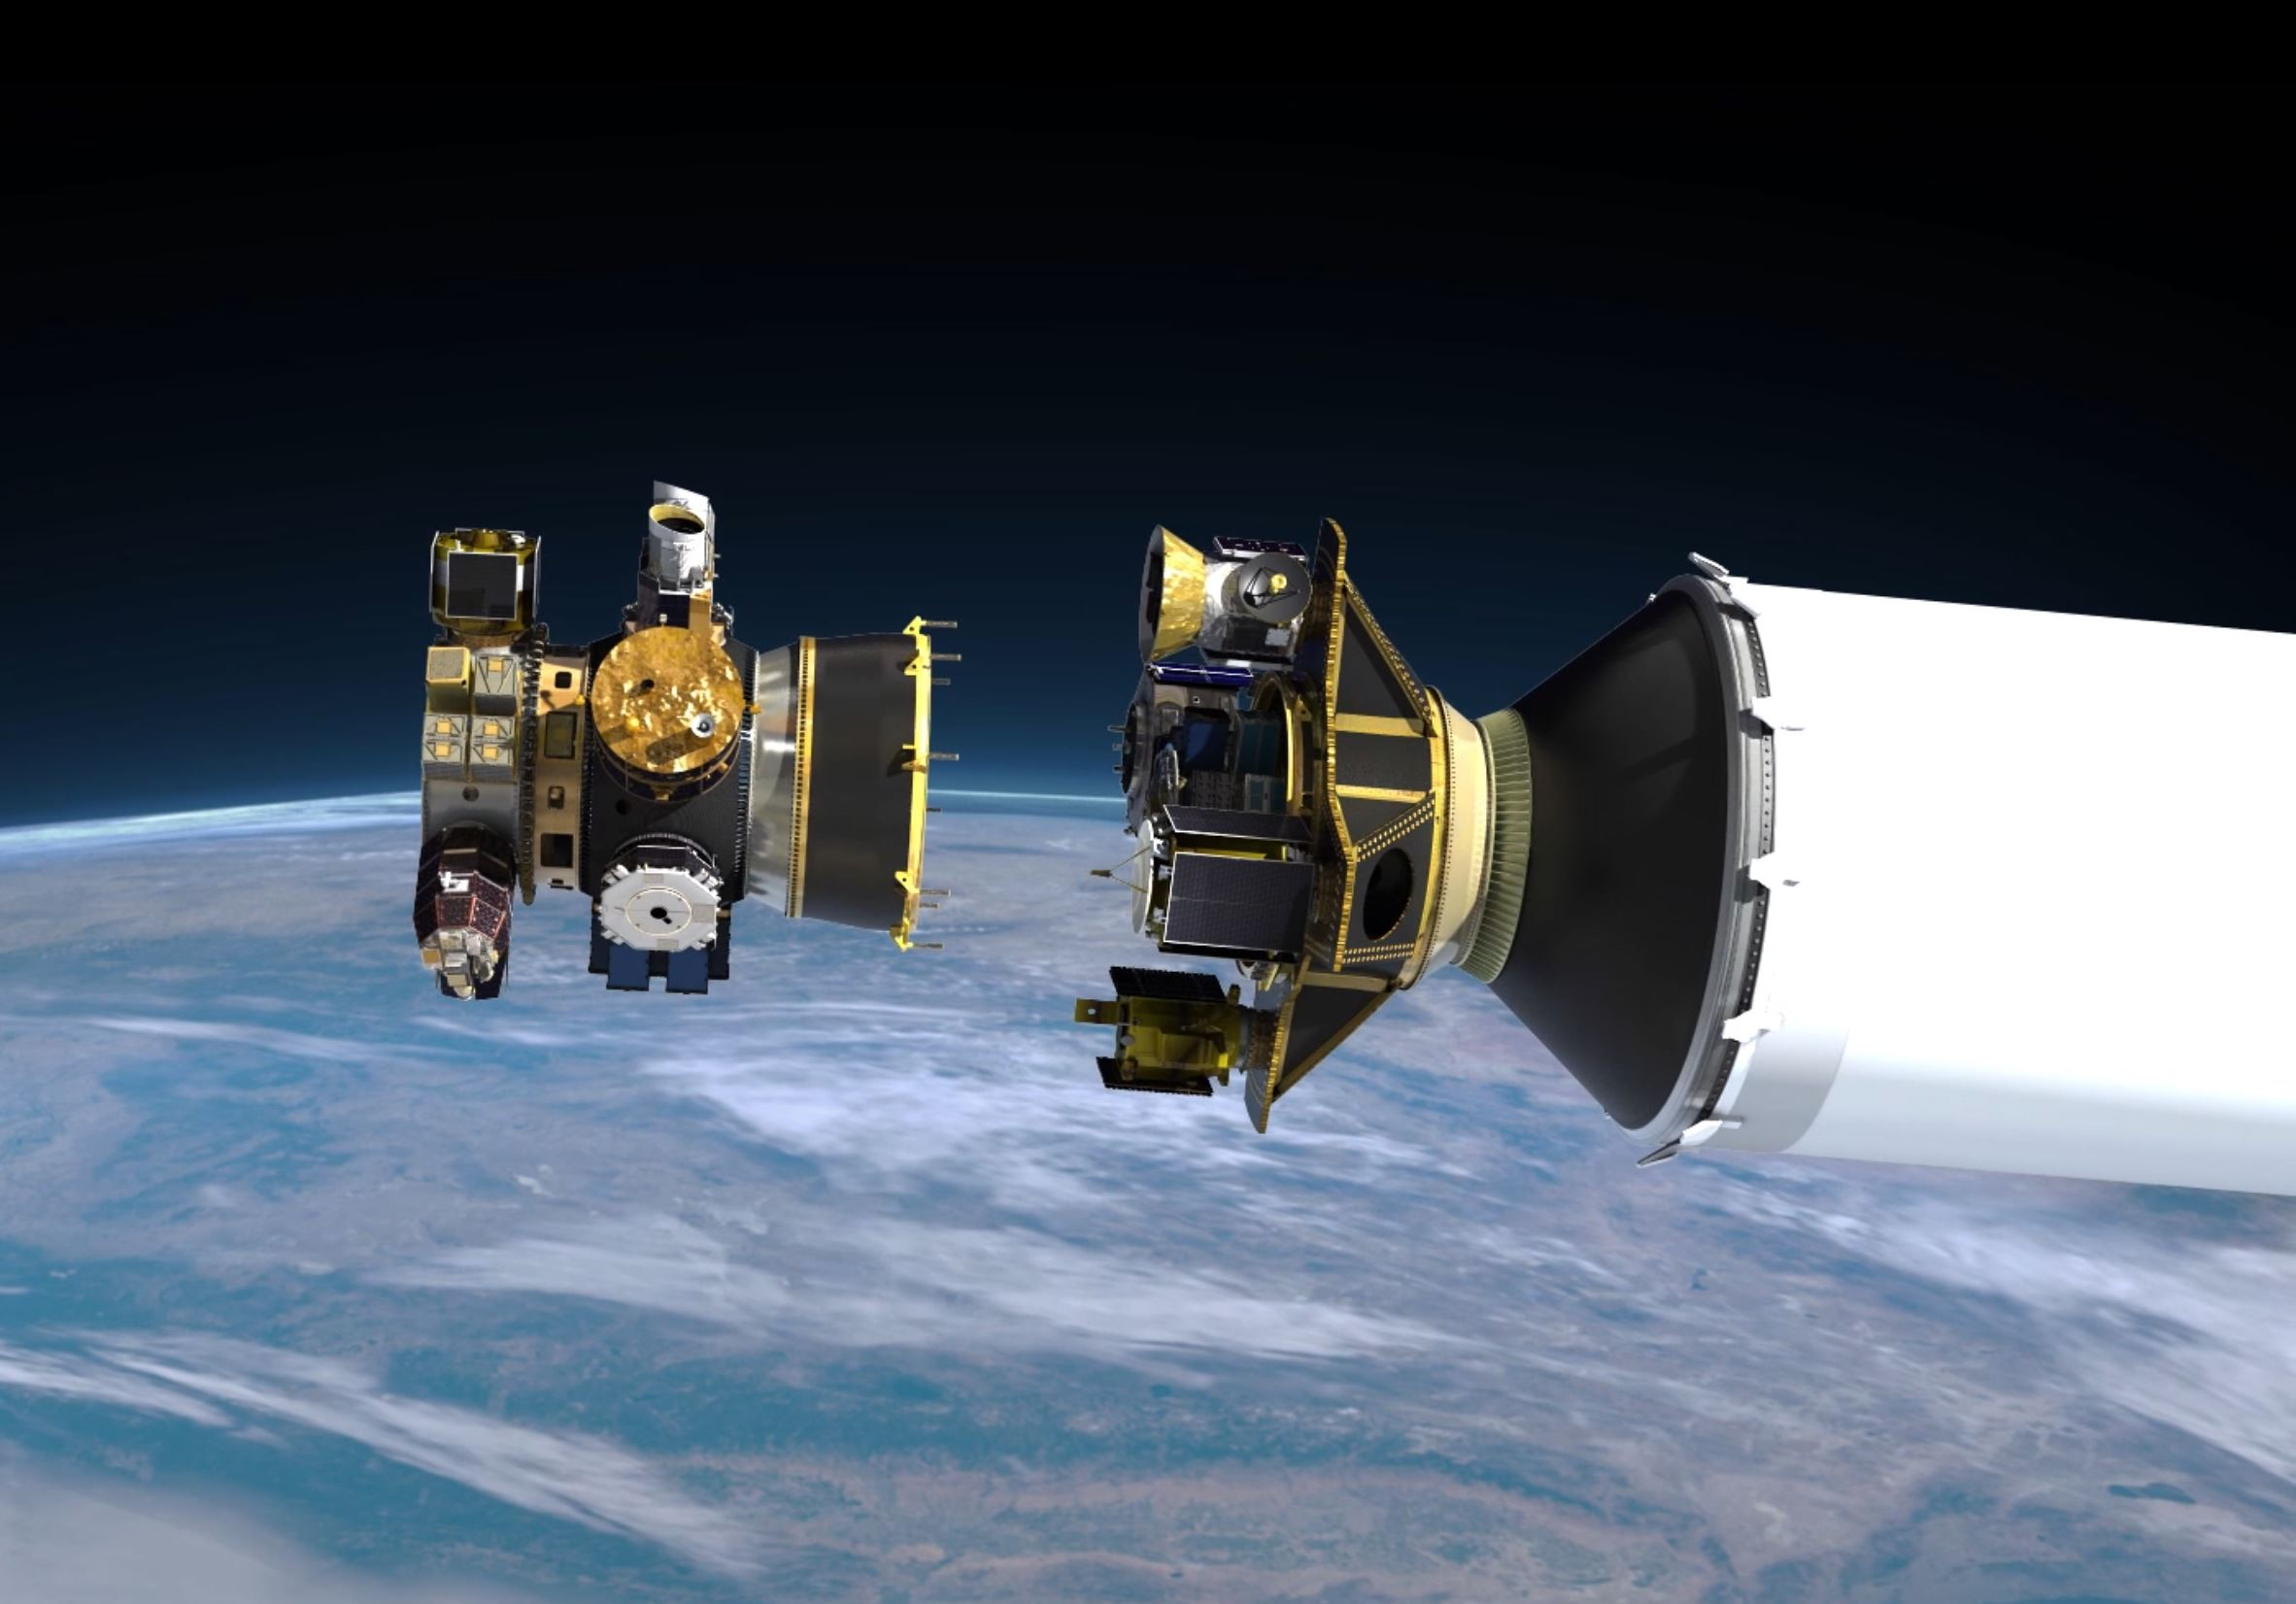 SSO-A Upper Free Flyer sep F9 S2 (Spaceflight) 1